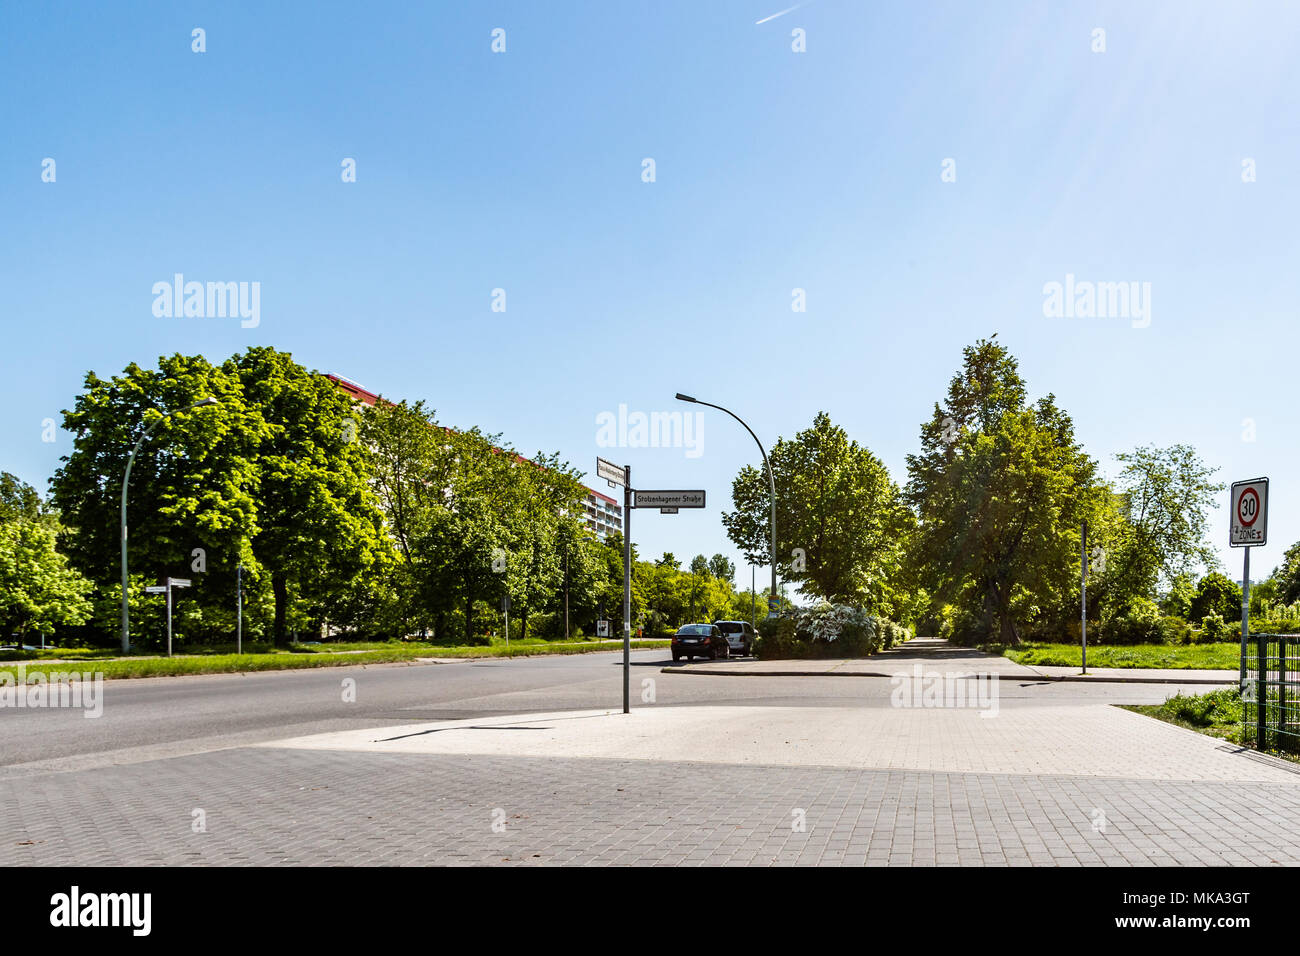 Crossroads with no traffic in Berlin Marzahn, Germany - Stock Image